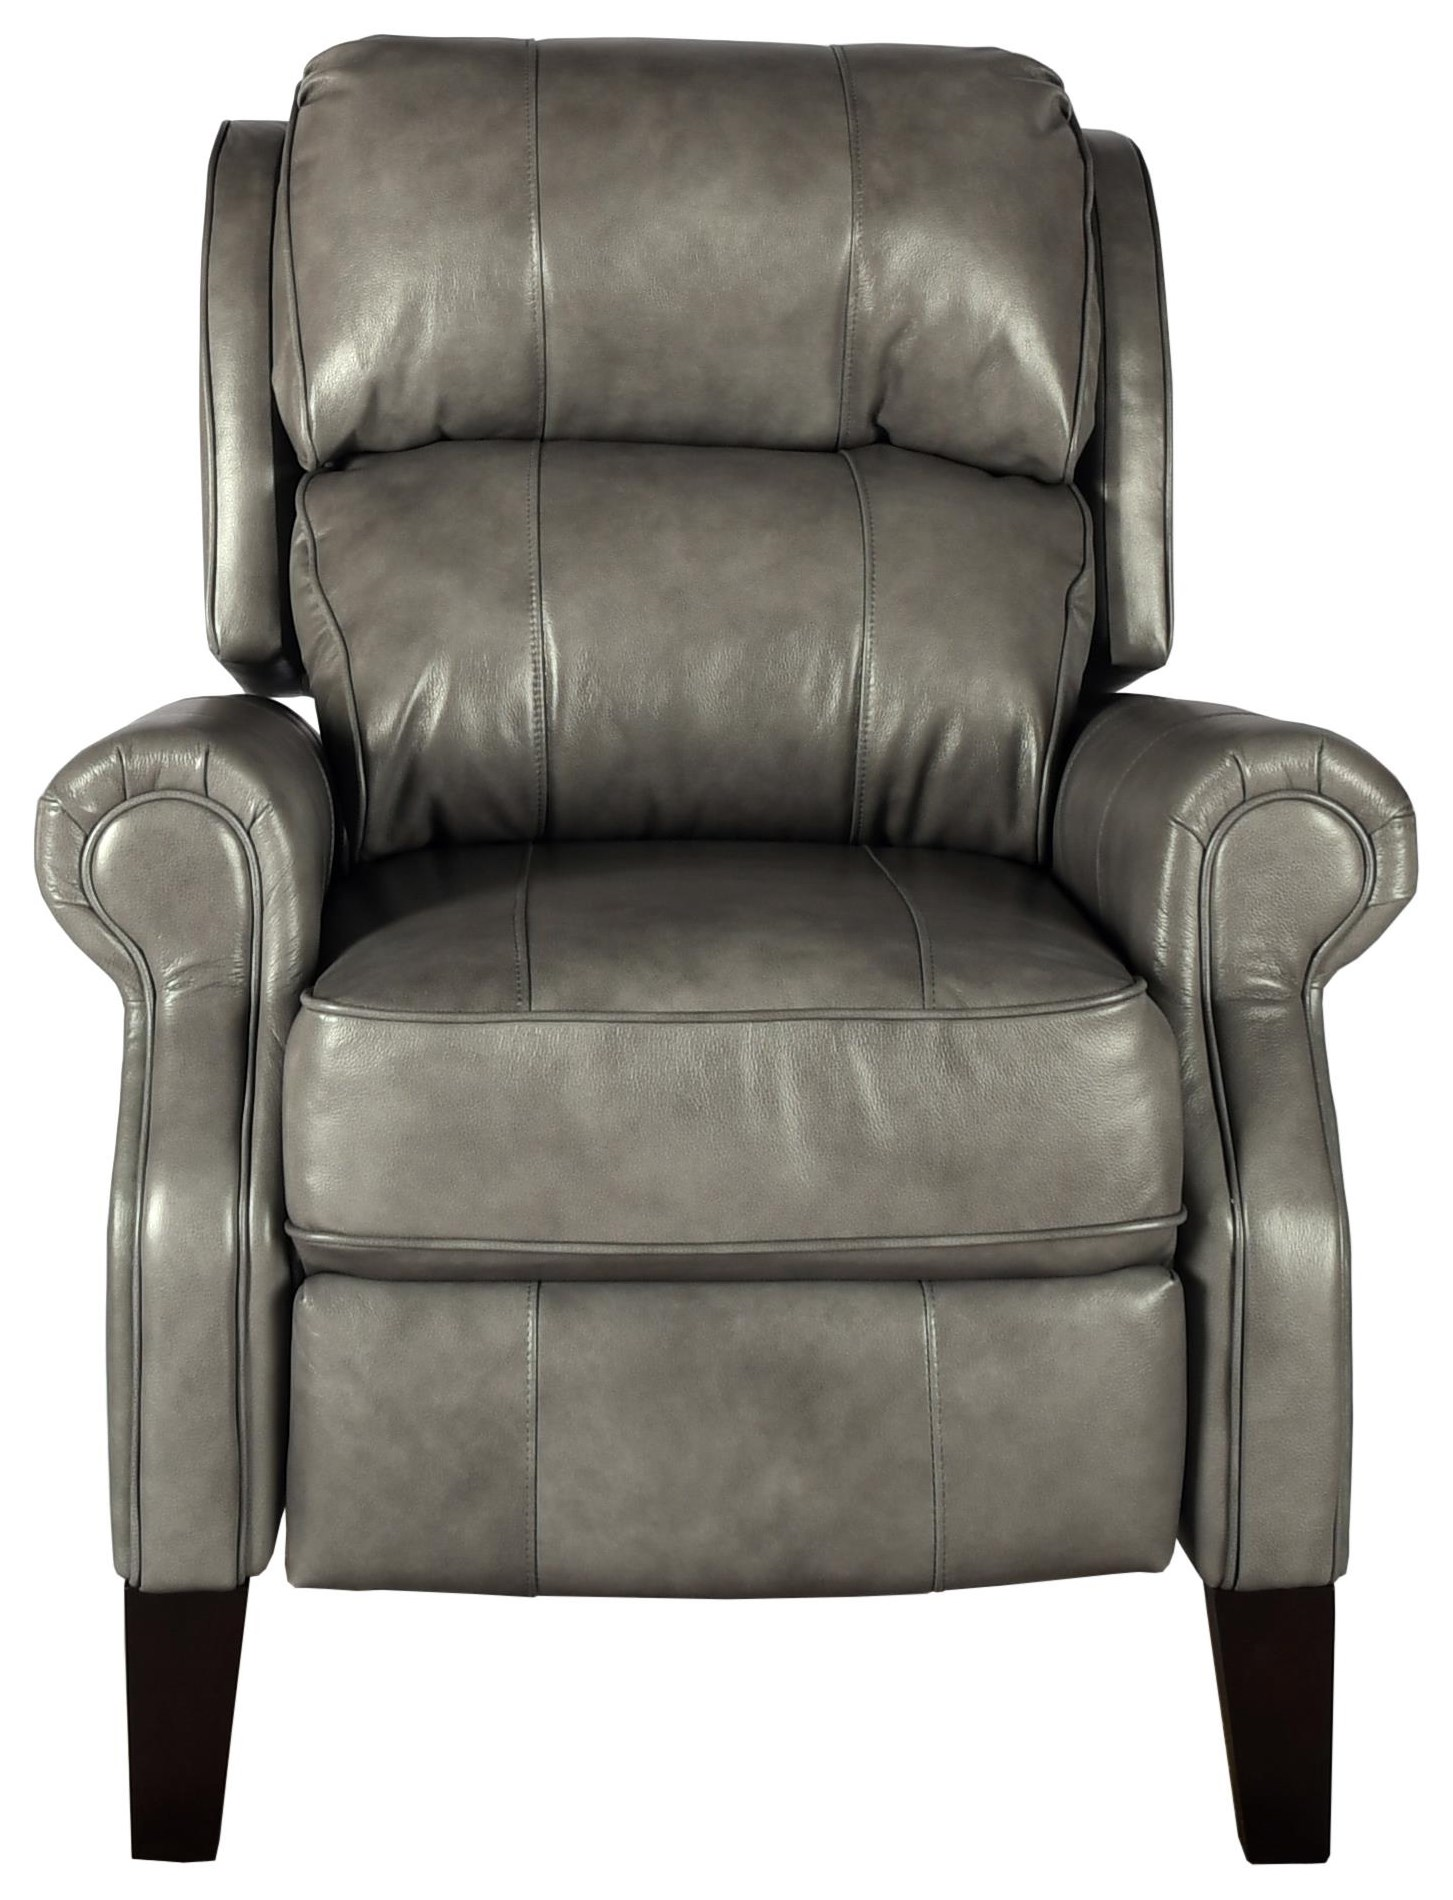 Janae Leather Recliner by Bravo Furniture at Bennett's Furniture and Mattresses